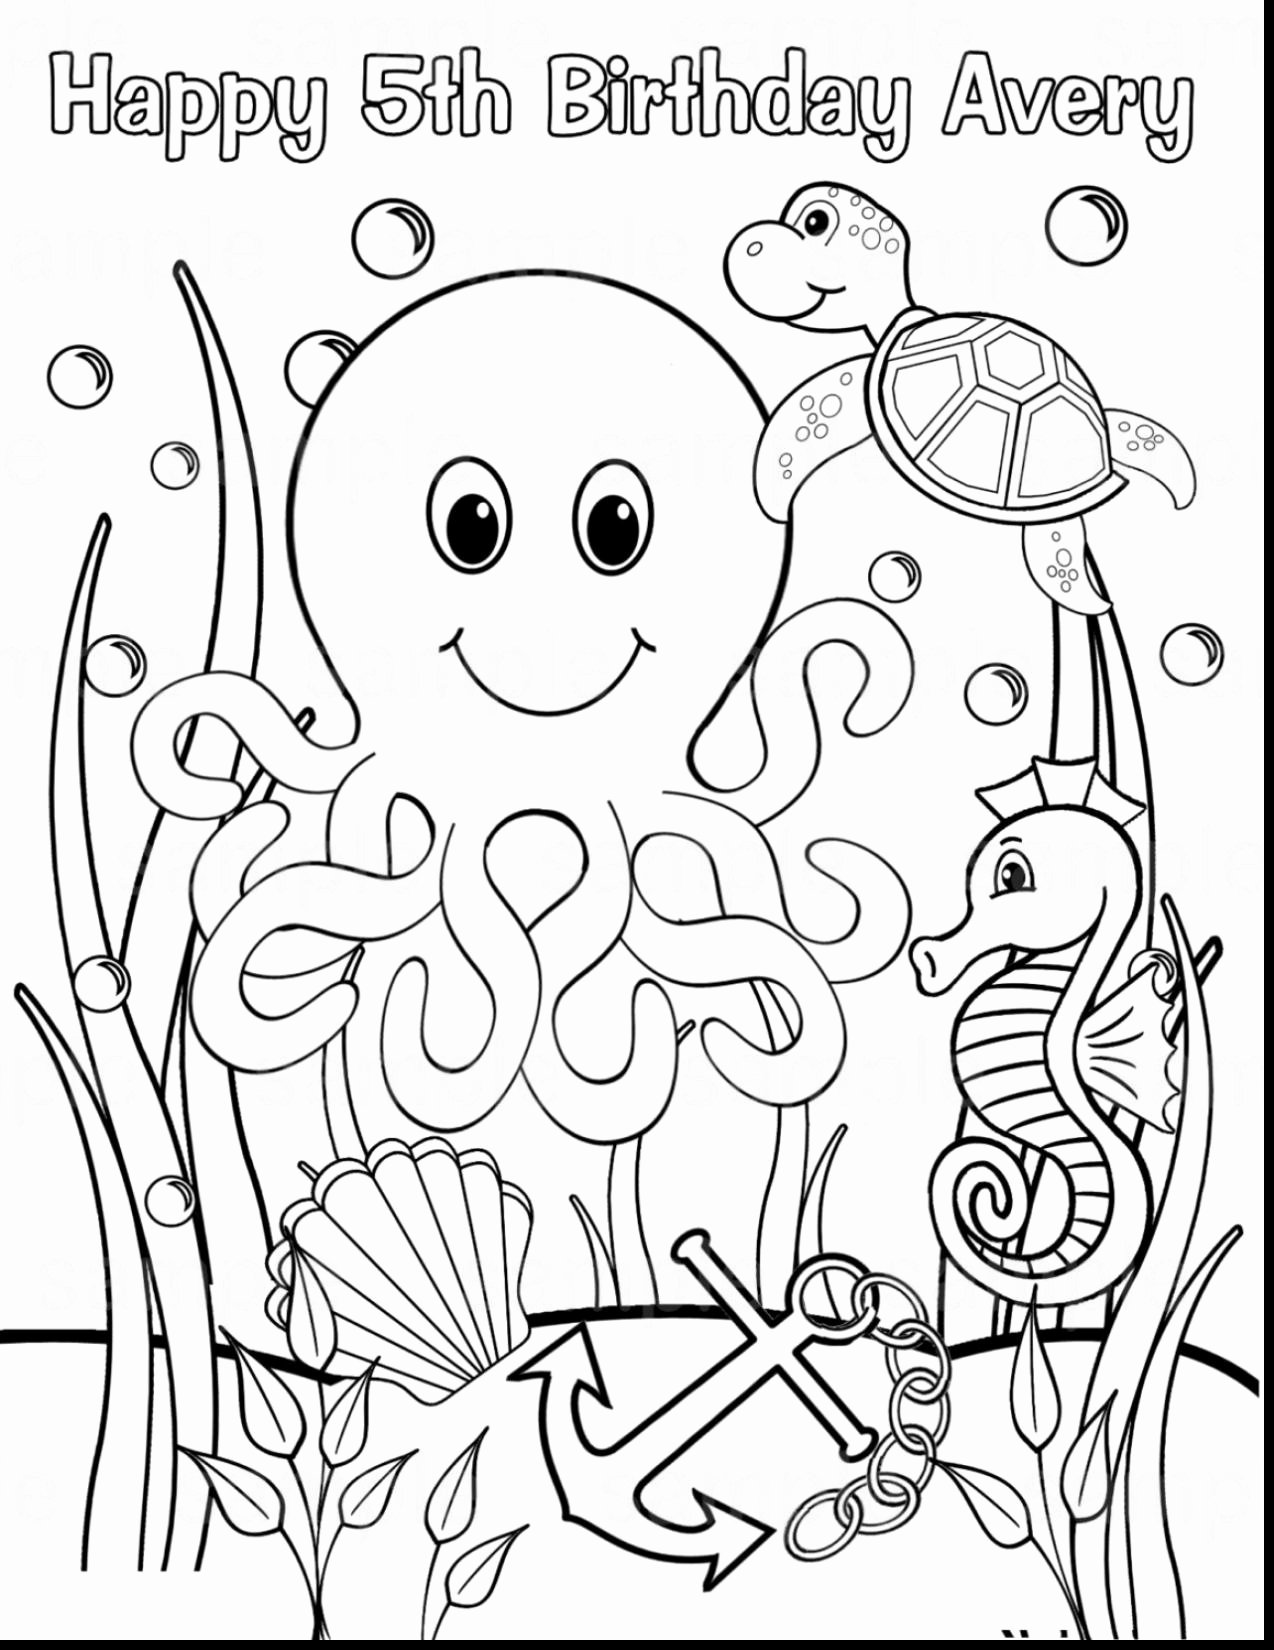 1274x1650 Shadrach Meshach And Abednego Coloring Page New Sampler Island